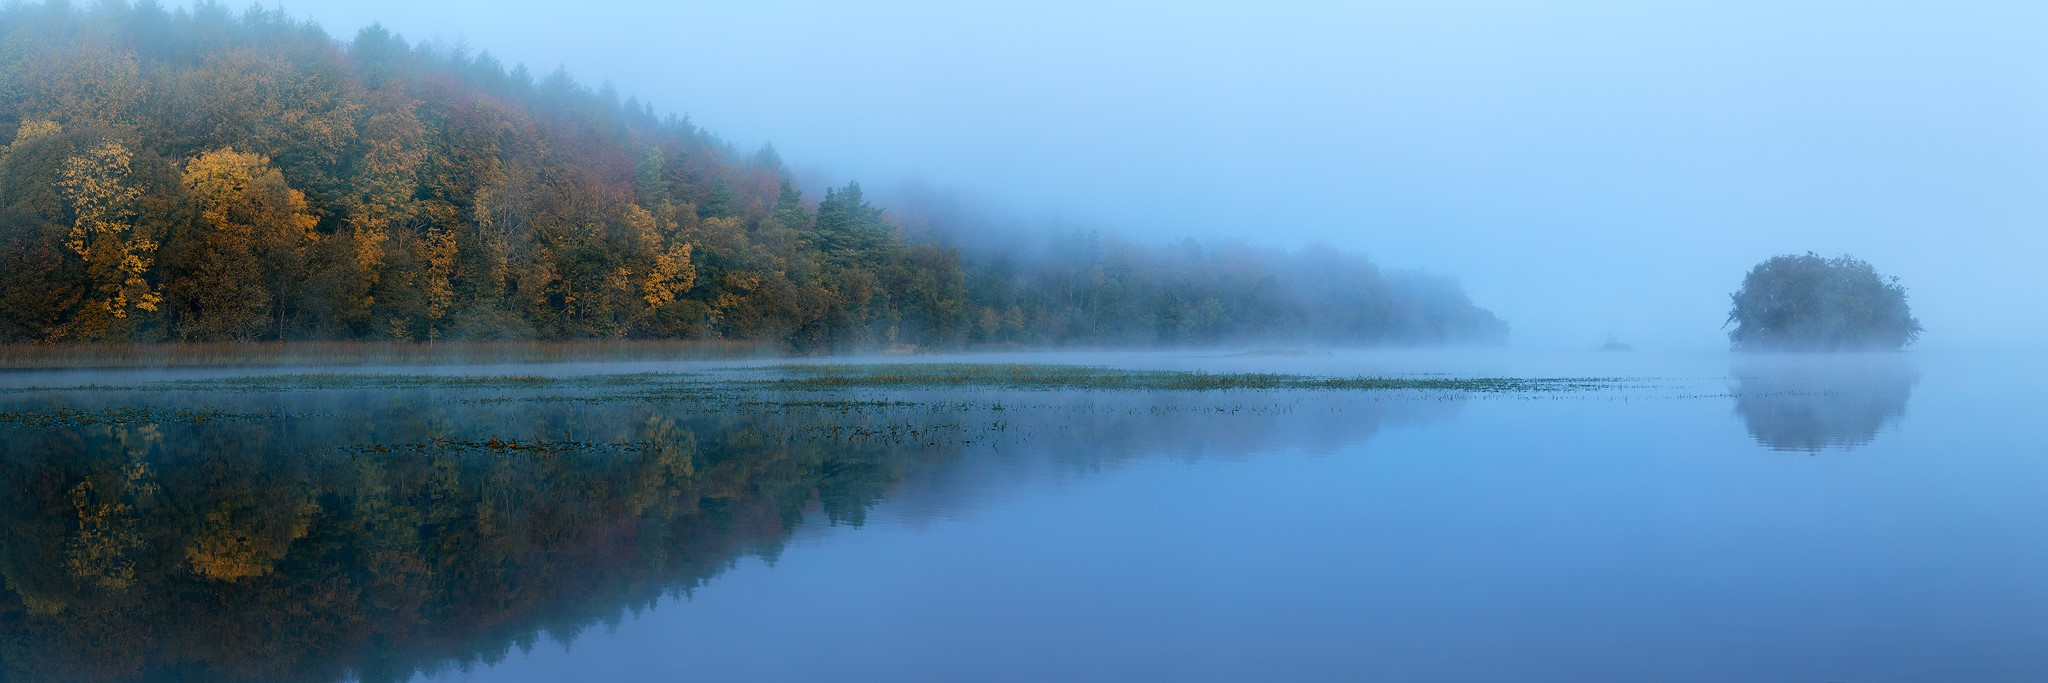 Ely Lodge Forest on the shores of lower lough erne